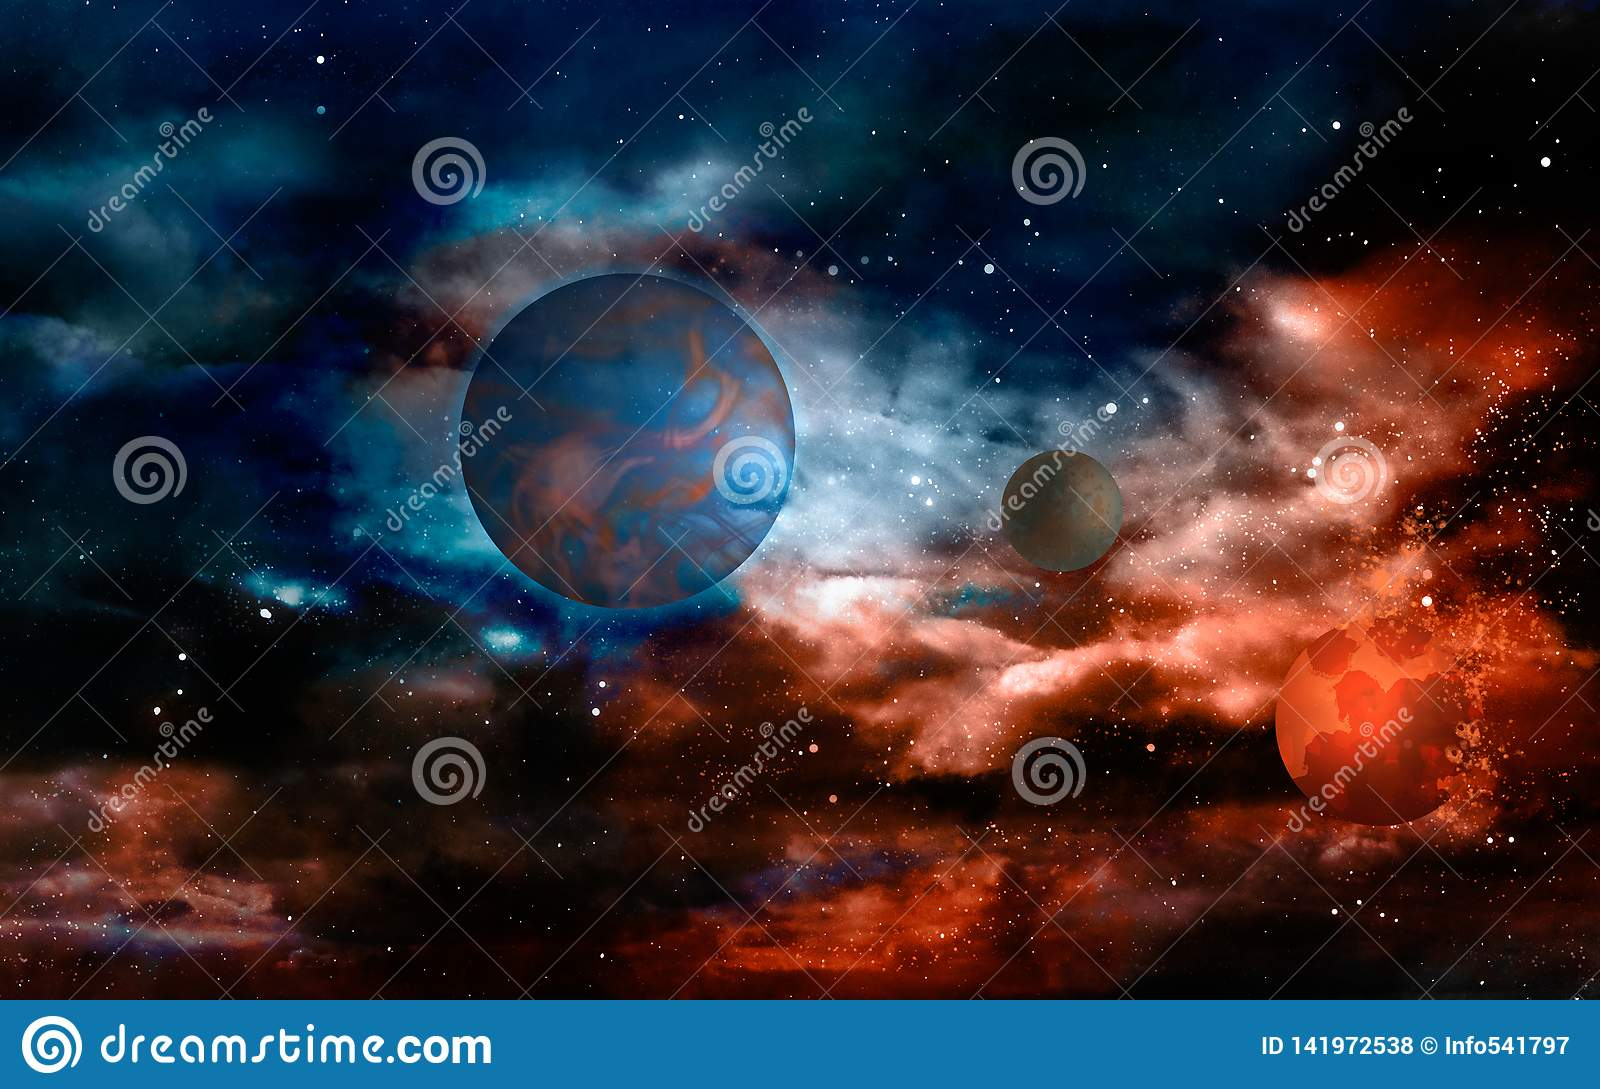 Planets in the red-hot universe